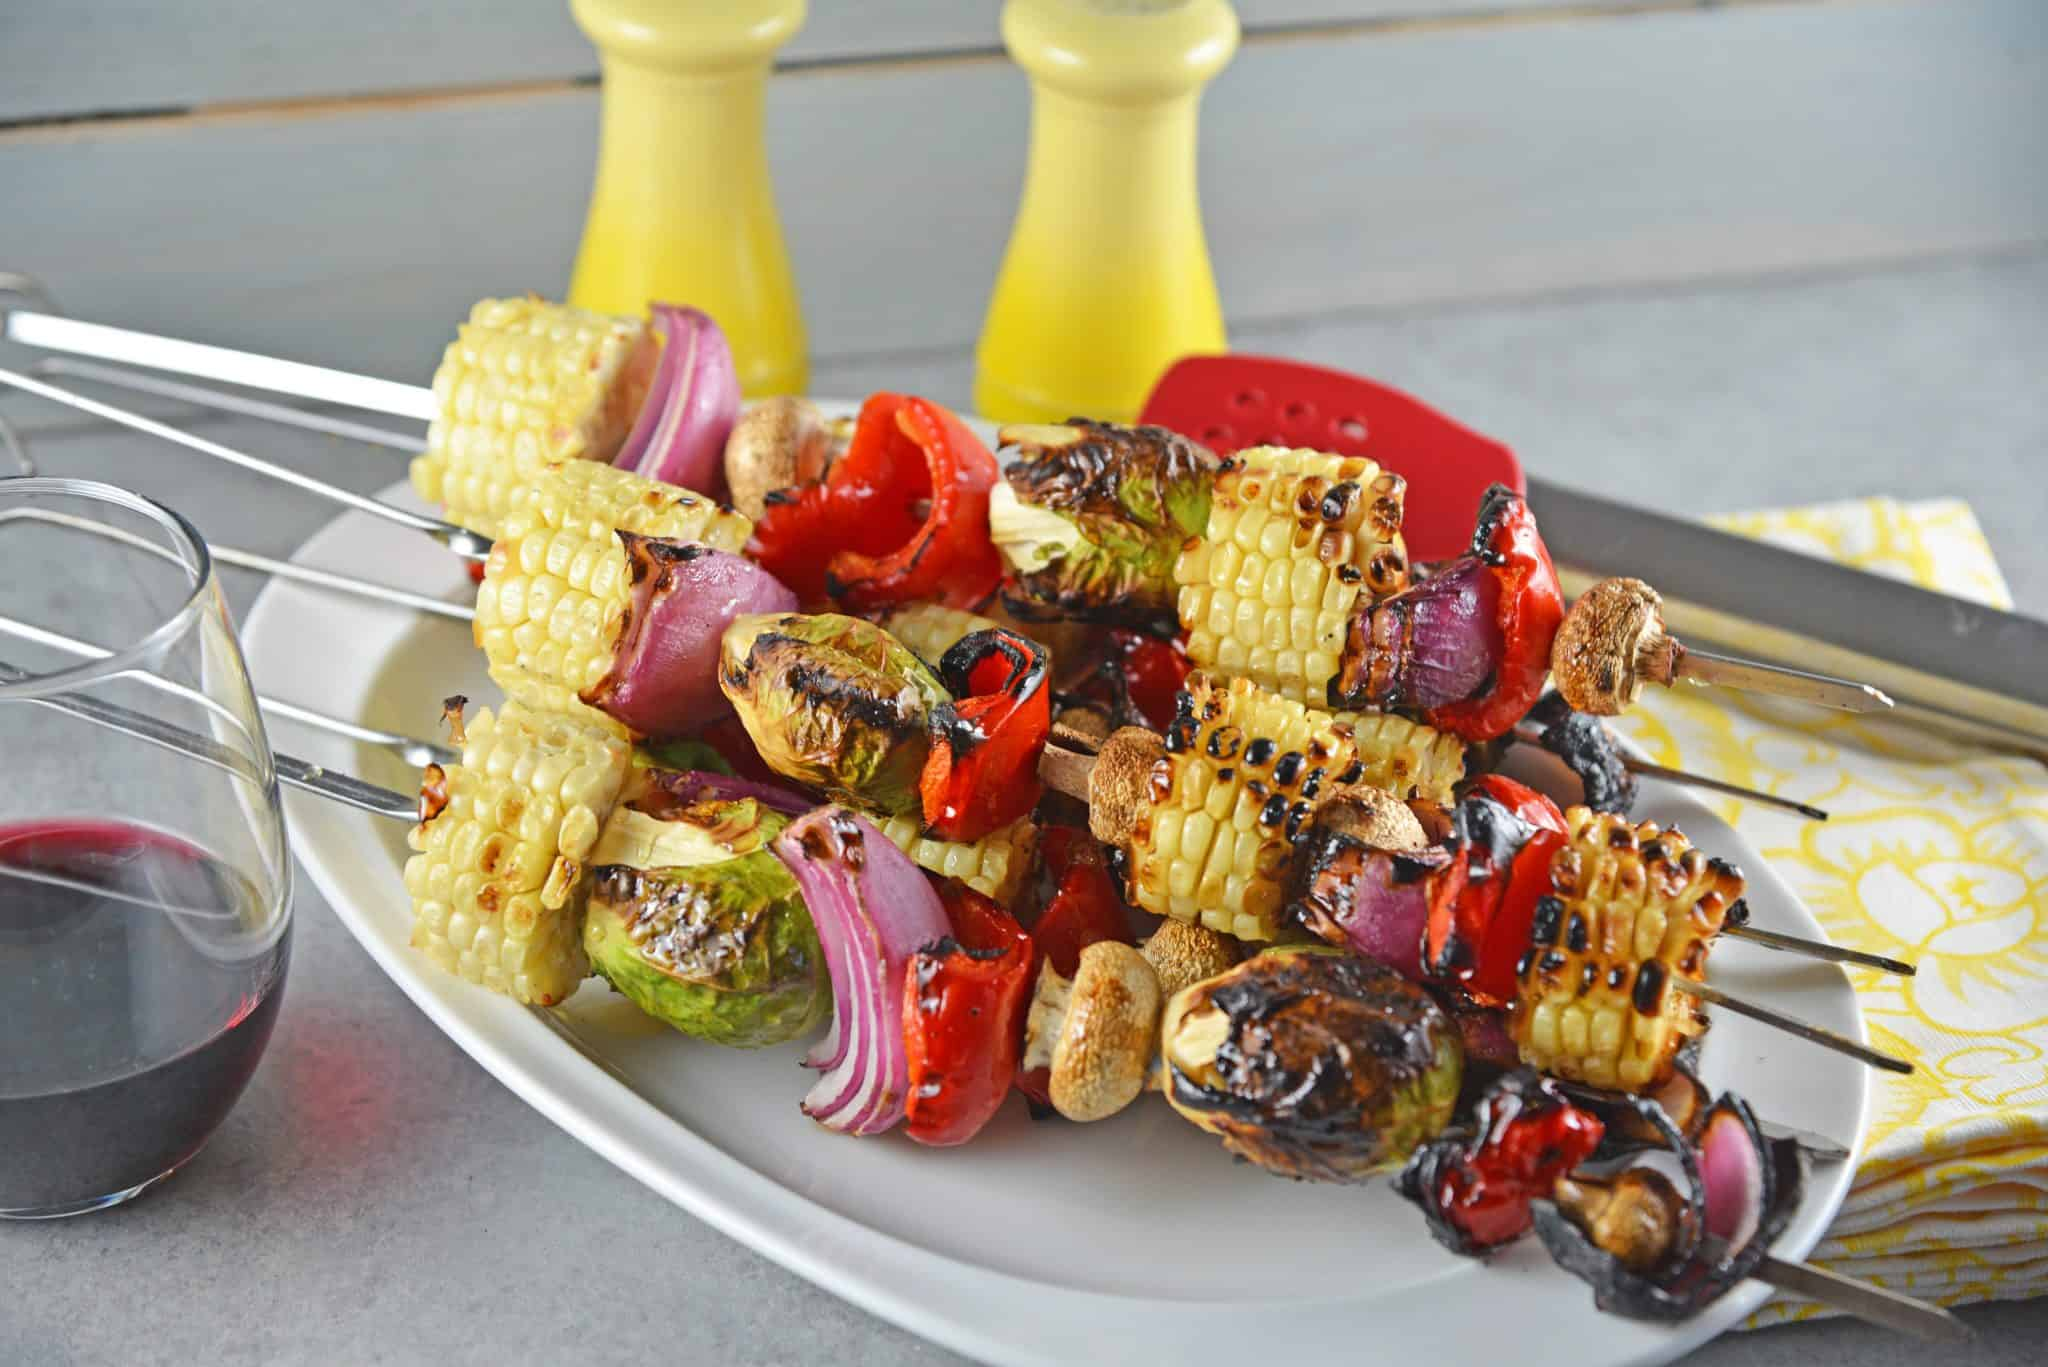 Spicy Honey Vegetable Kabobs are brightly colored skewered grilled vegetables with a sweet and spicy sauce. The perfect side dish for any grilled meal!